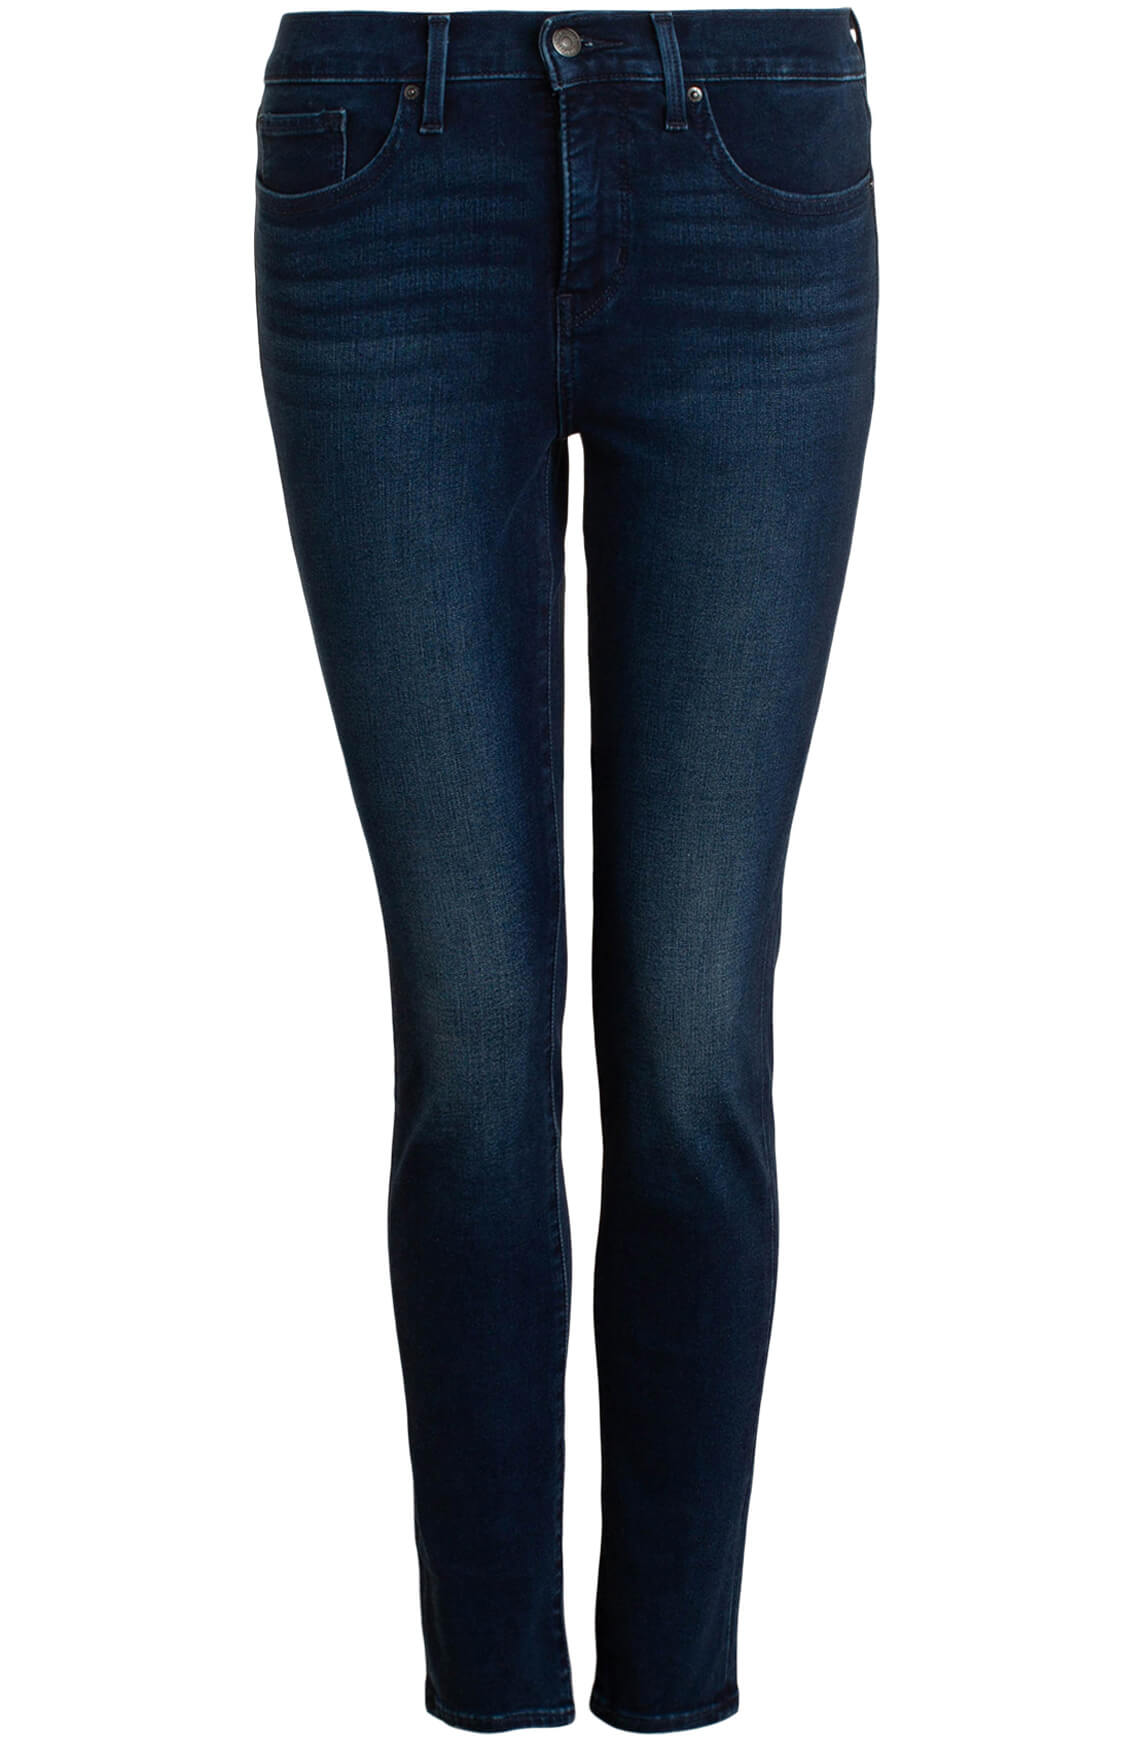 Levi s Dames 311 L32 shaping skinny jeans Blauw